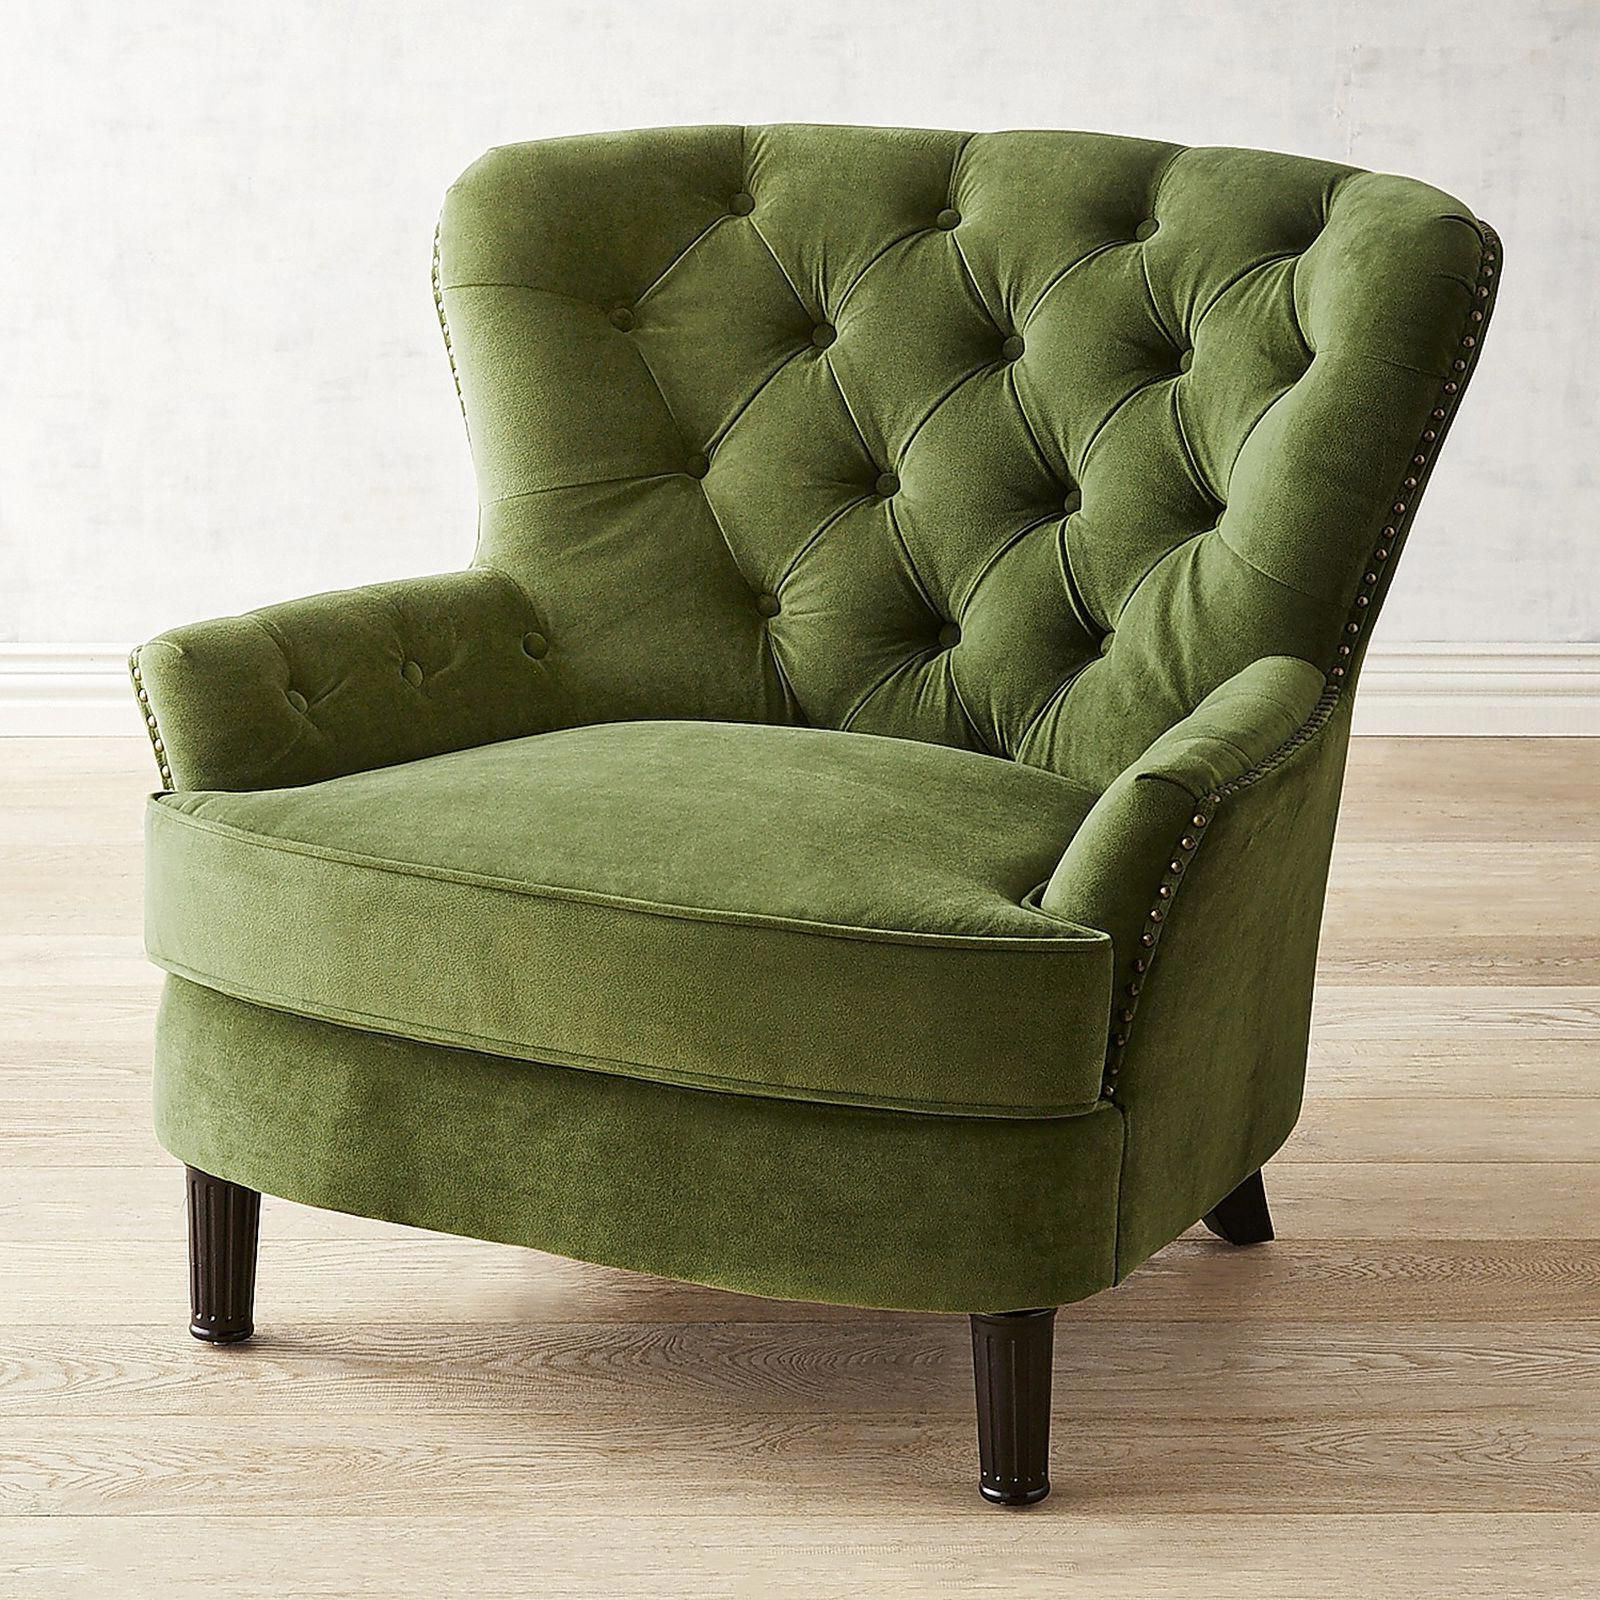 Latest Dang! I Genuinely Prefer This Coloring For These Regarding Didonato Tufted Velvet Armchairs (View 18 of 20)